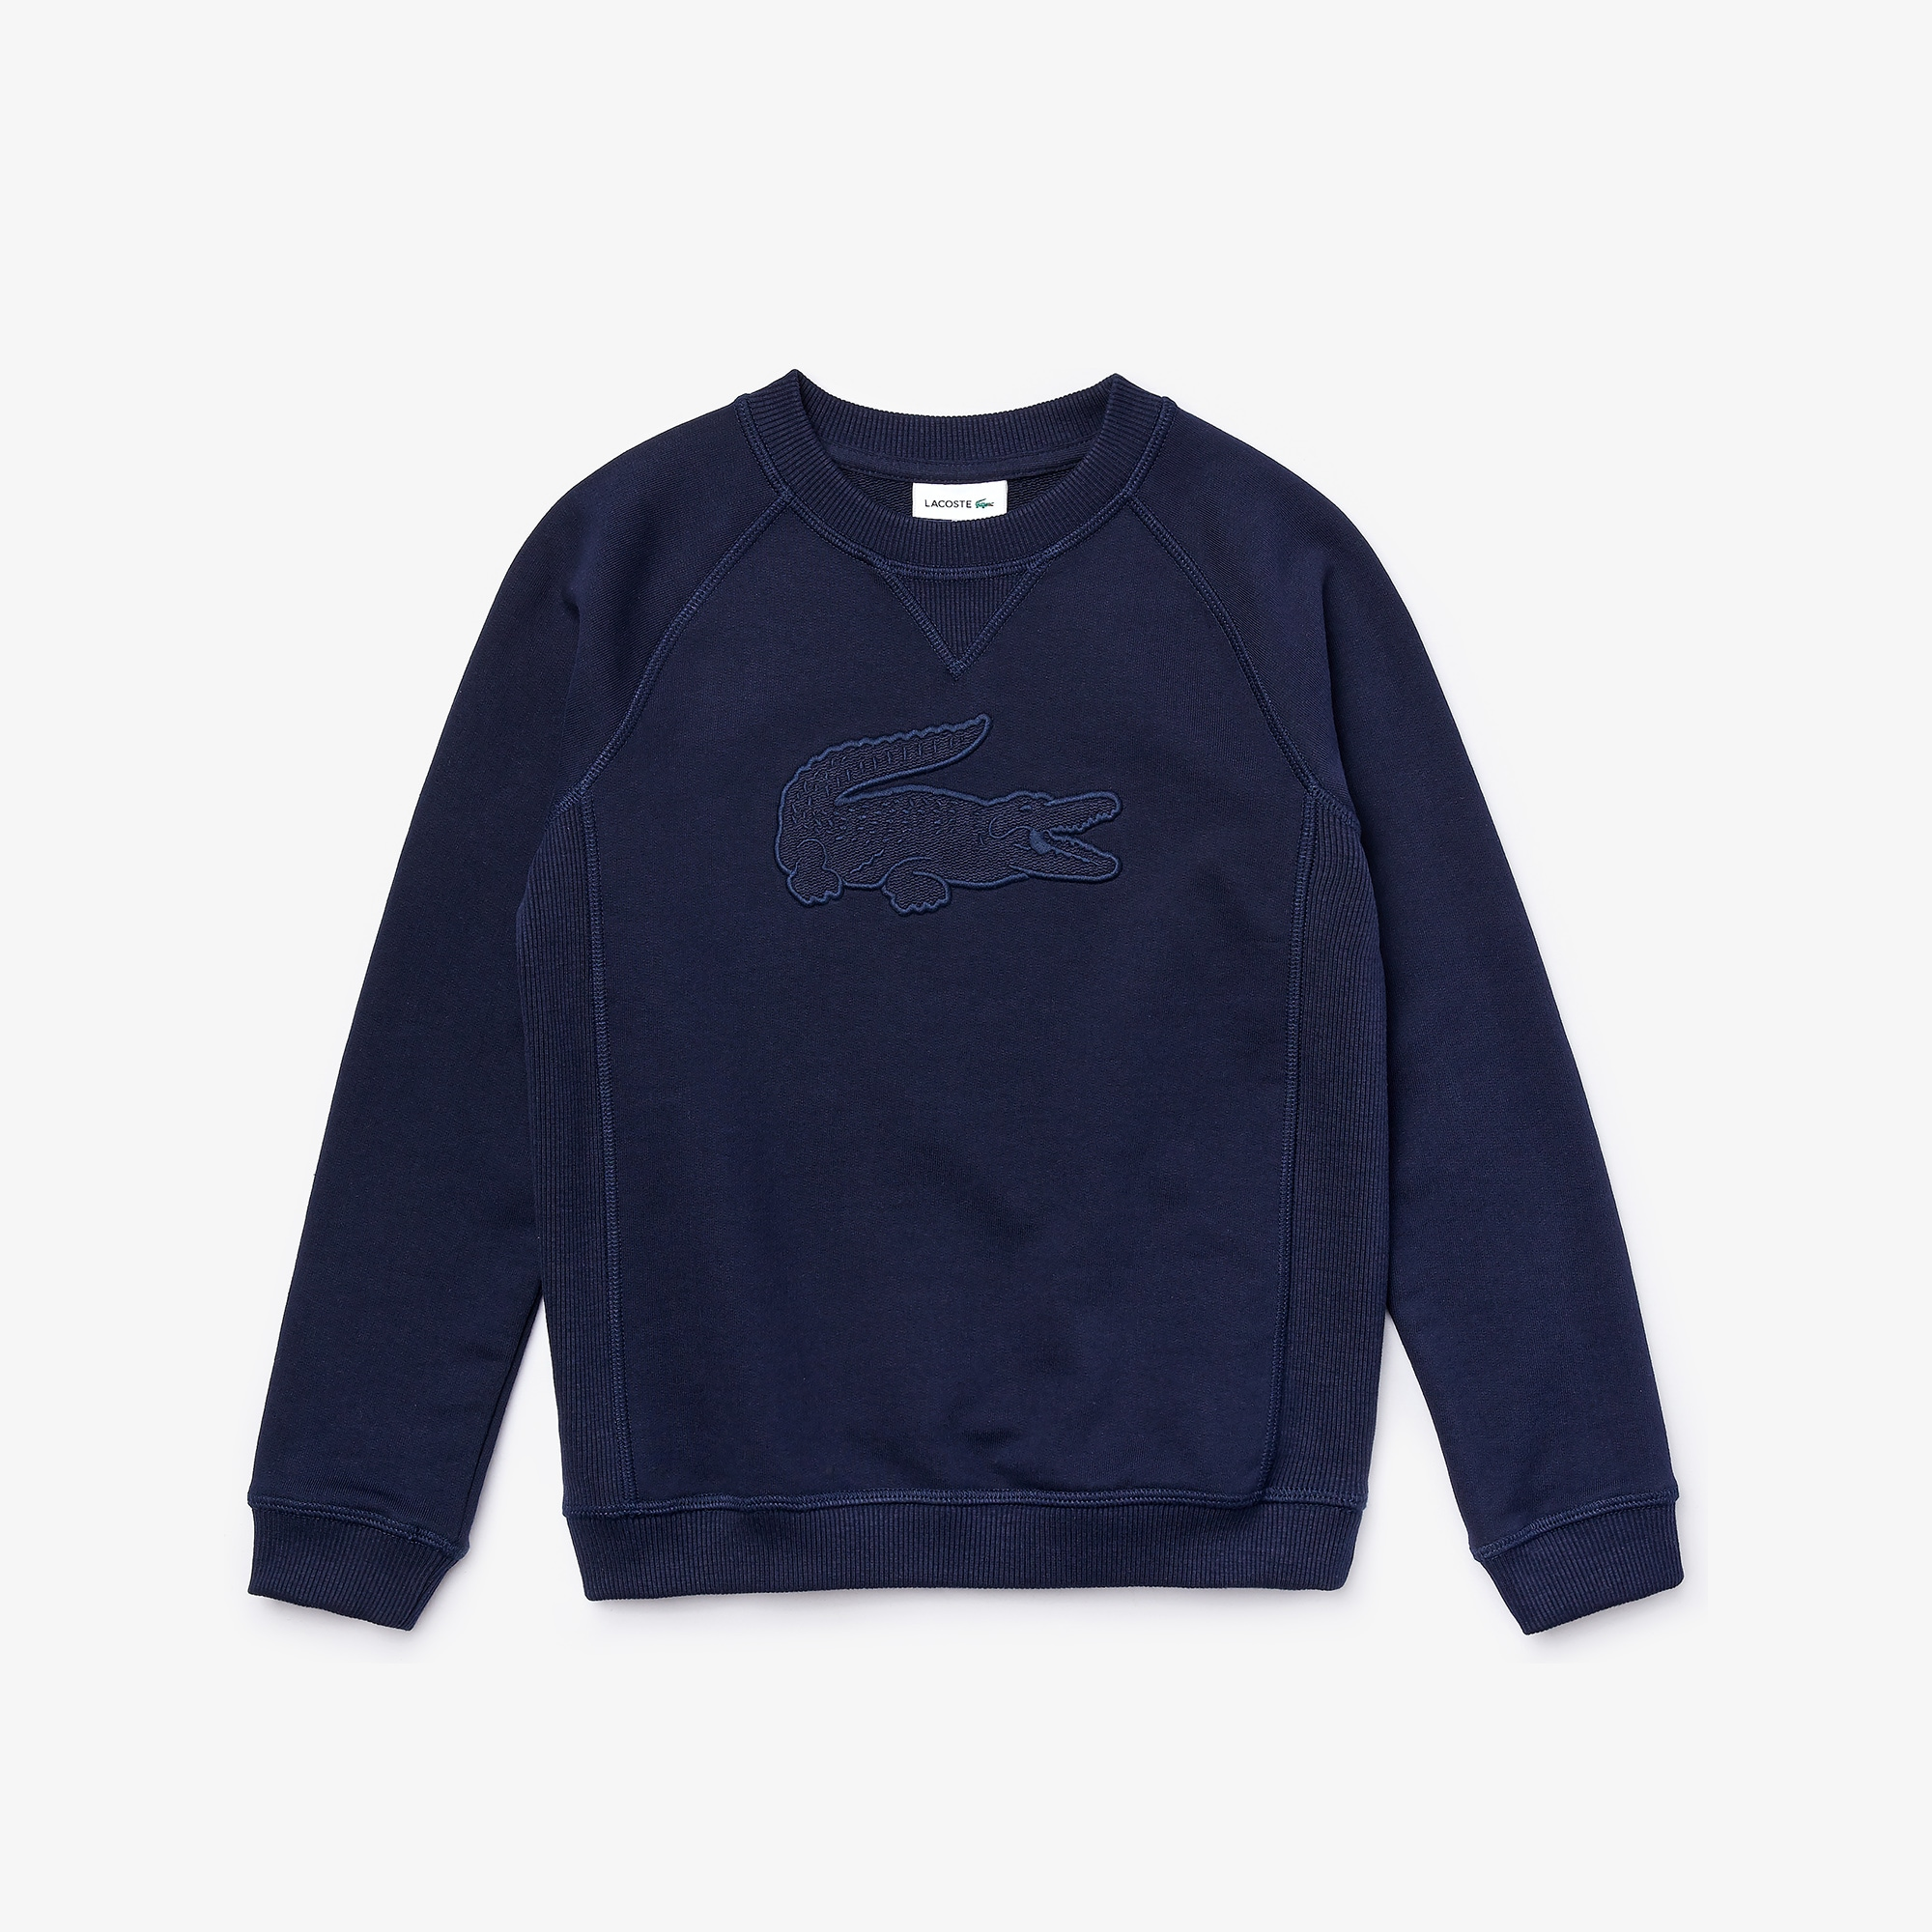 Boys' Embroidered Croc Cotton Graphic Sweatshirt